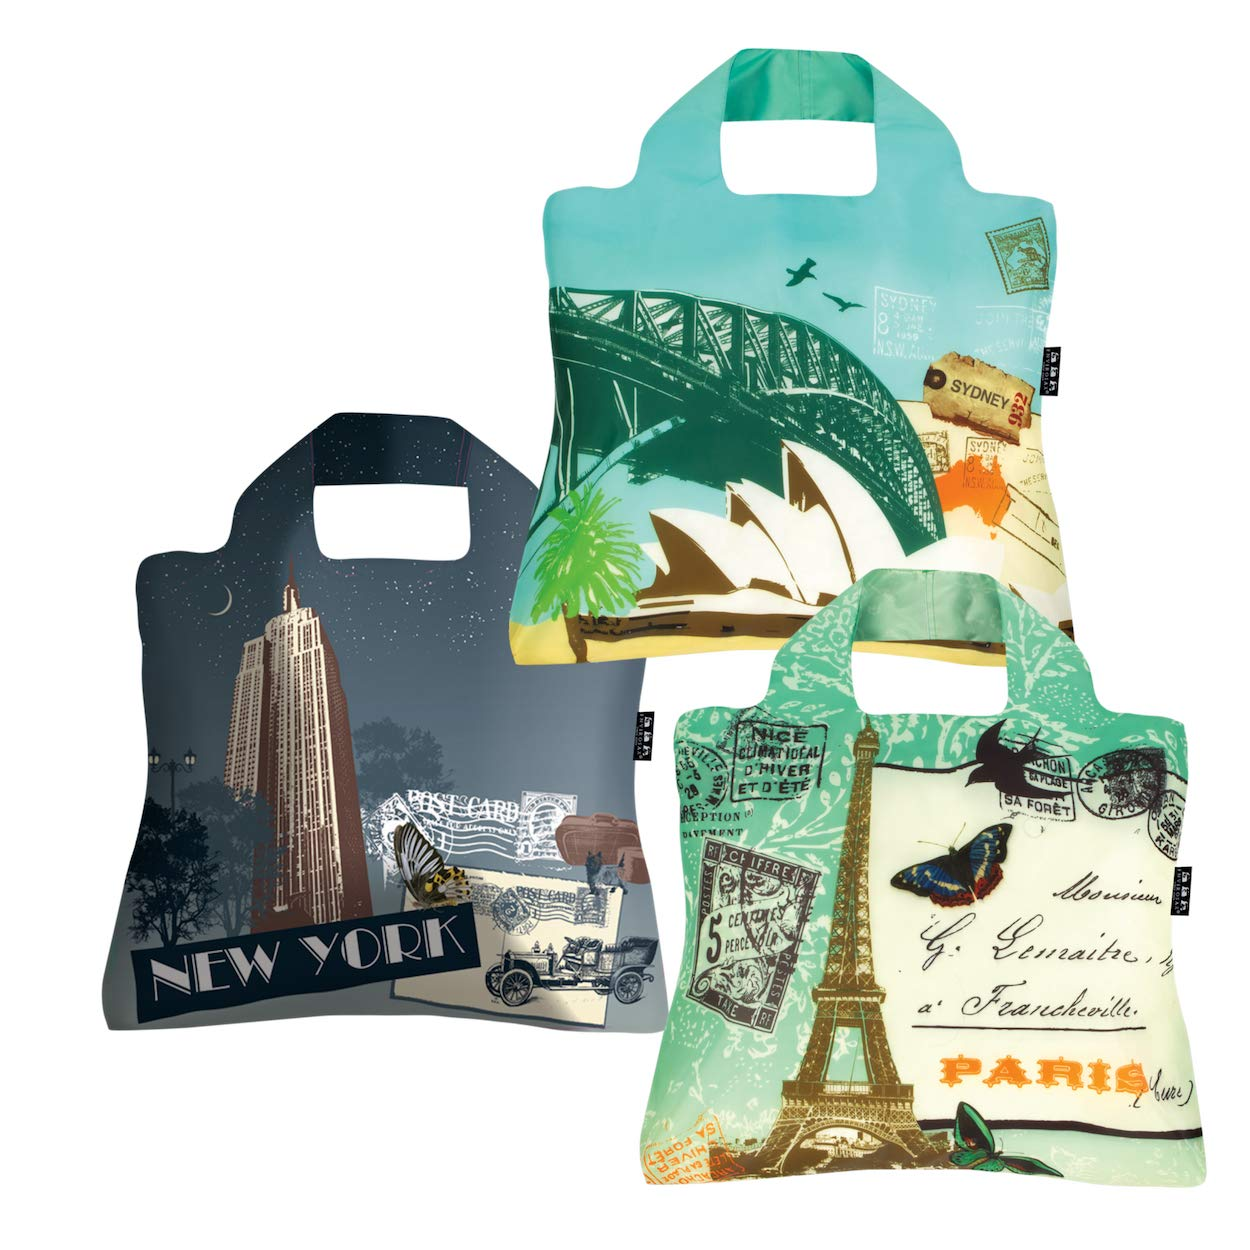 The Reusable Grocery Bags travel product recommended by Belinda Coker on Lifney.